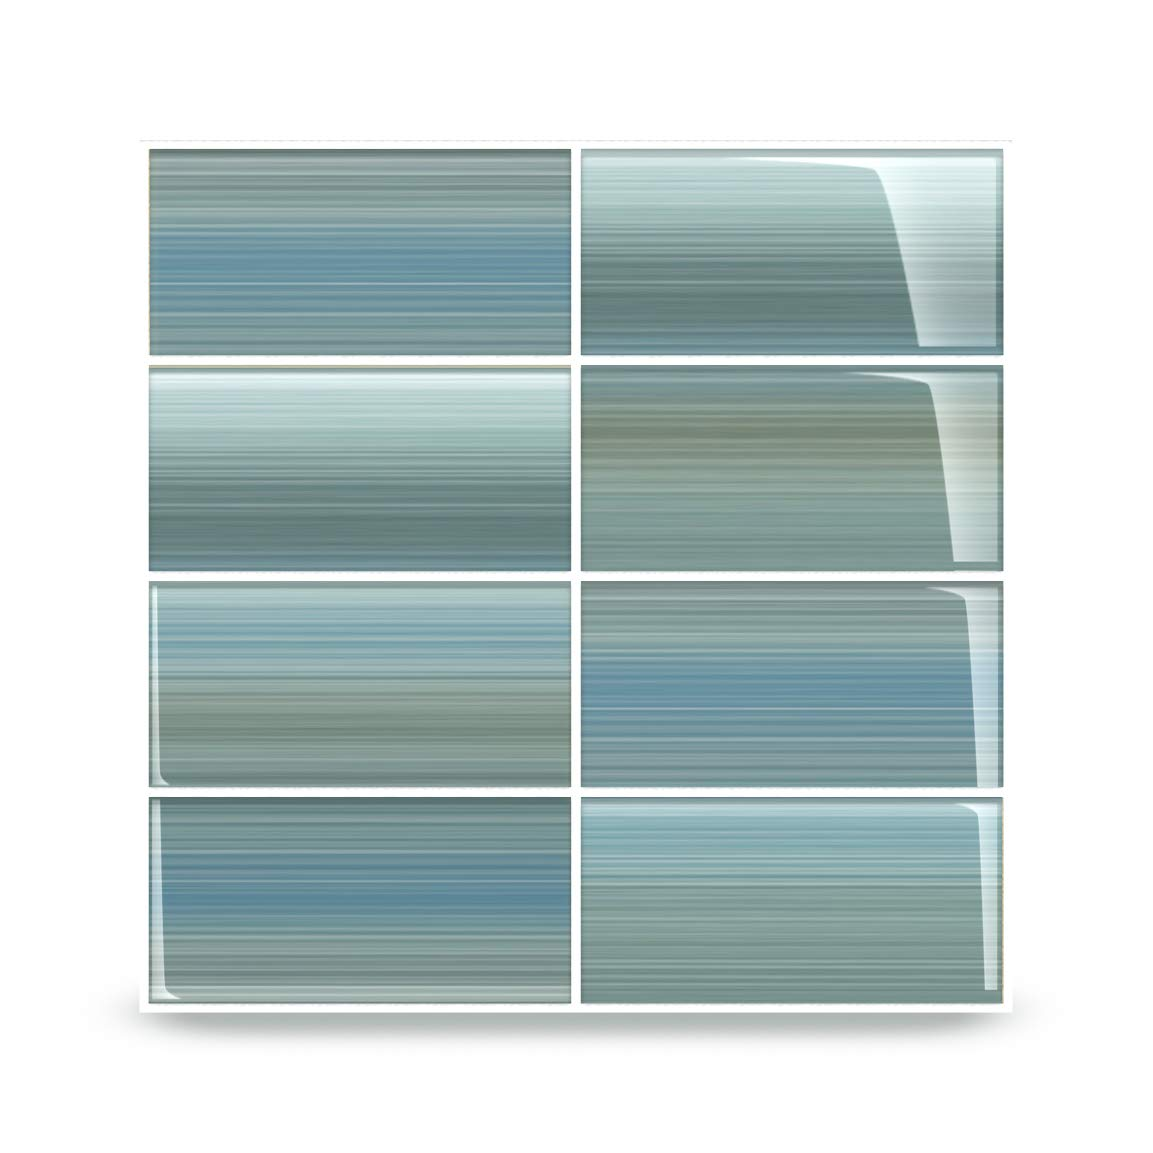 Bodesi Wintermoss Glass Subway Tile for Kitchen Backsplash or Bathroom, 3x6